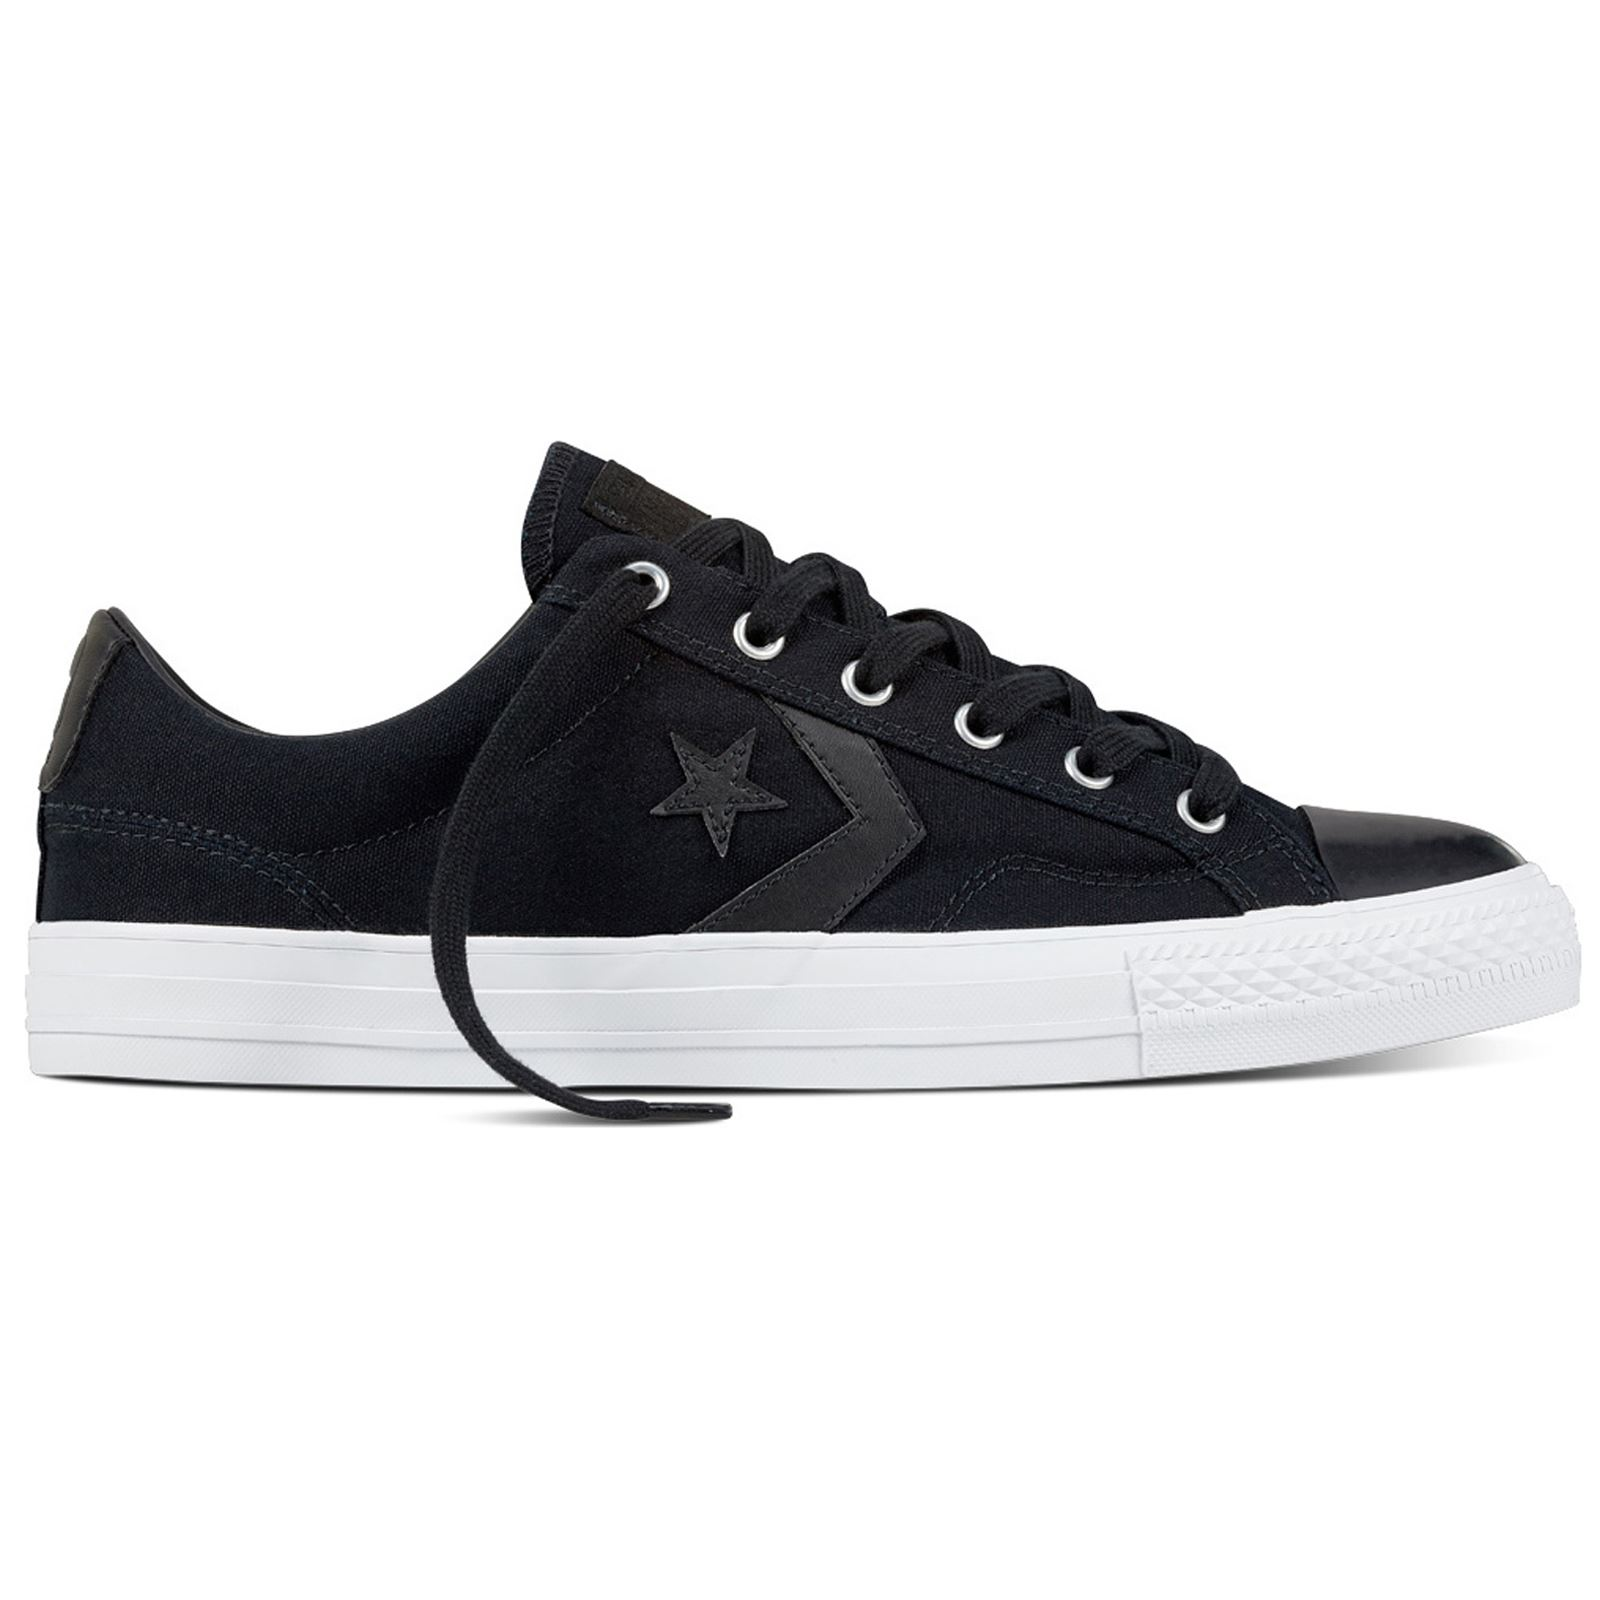 Converse Star Player Ox Black Womens Canvas Low Top Trainers